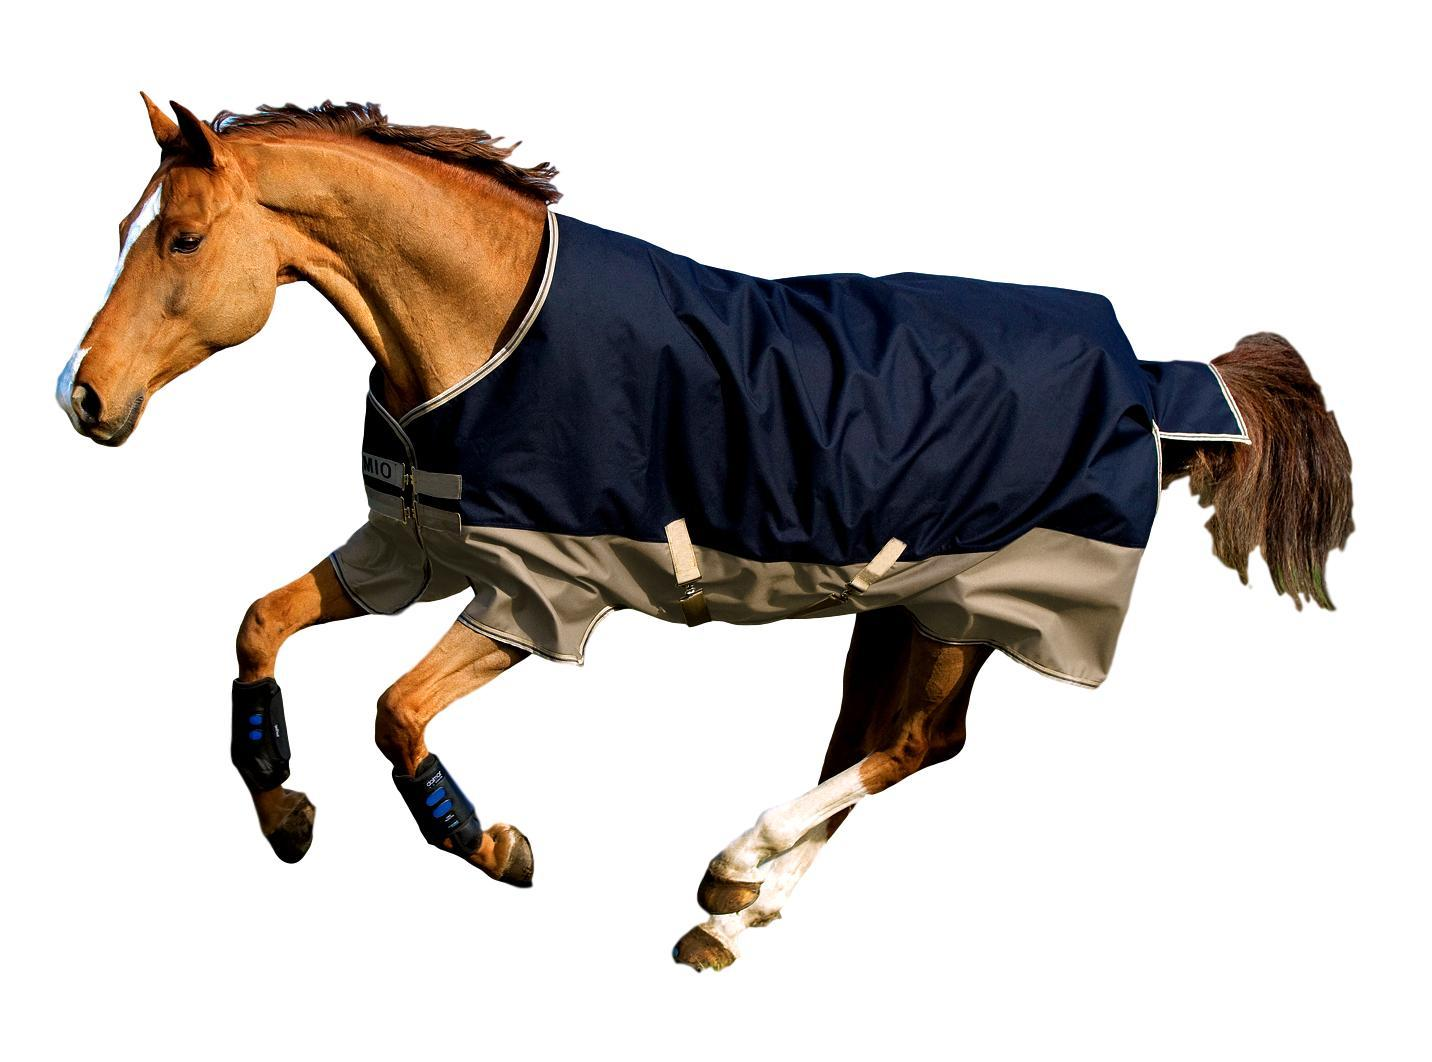 Horseware Ireland Mio 600D Turnout Blanket Medium 200g Fill with Lining Nylon Lining with 90cfd9